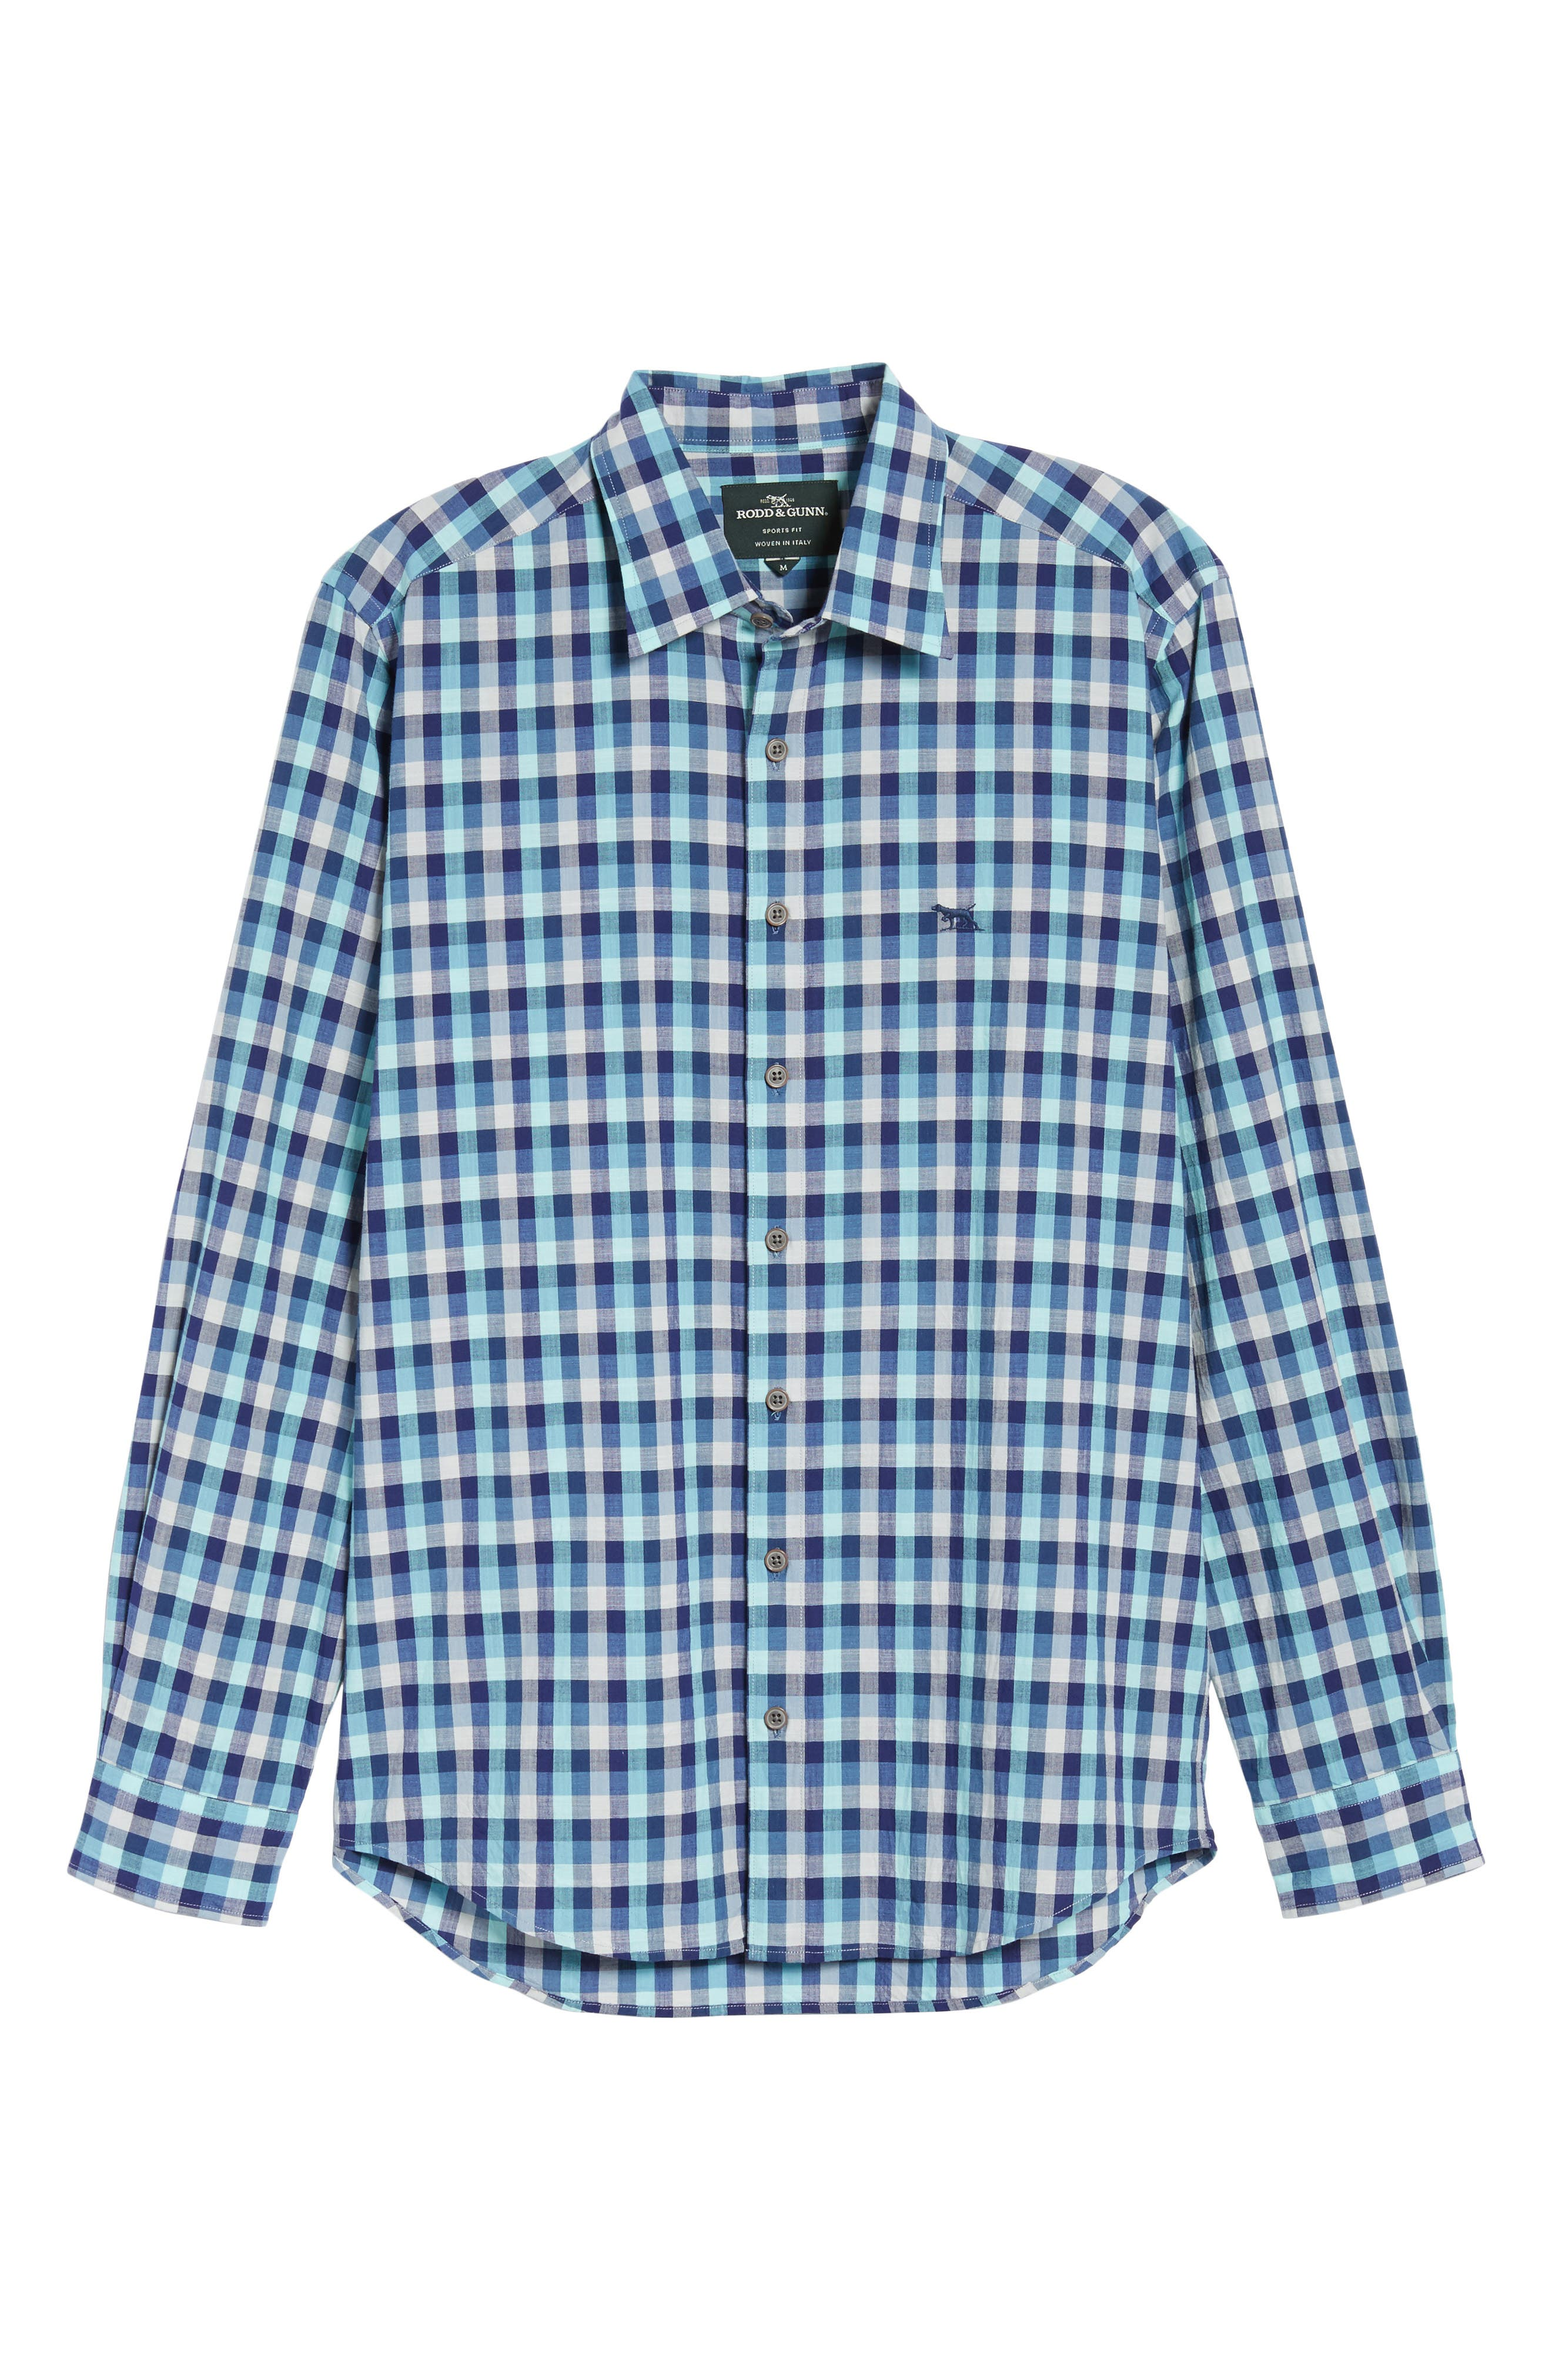 Larson Regular Fit Check Sport Shirt,                             Alternate thumbnail 6, color,                             Seagrass